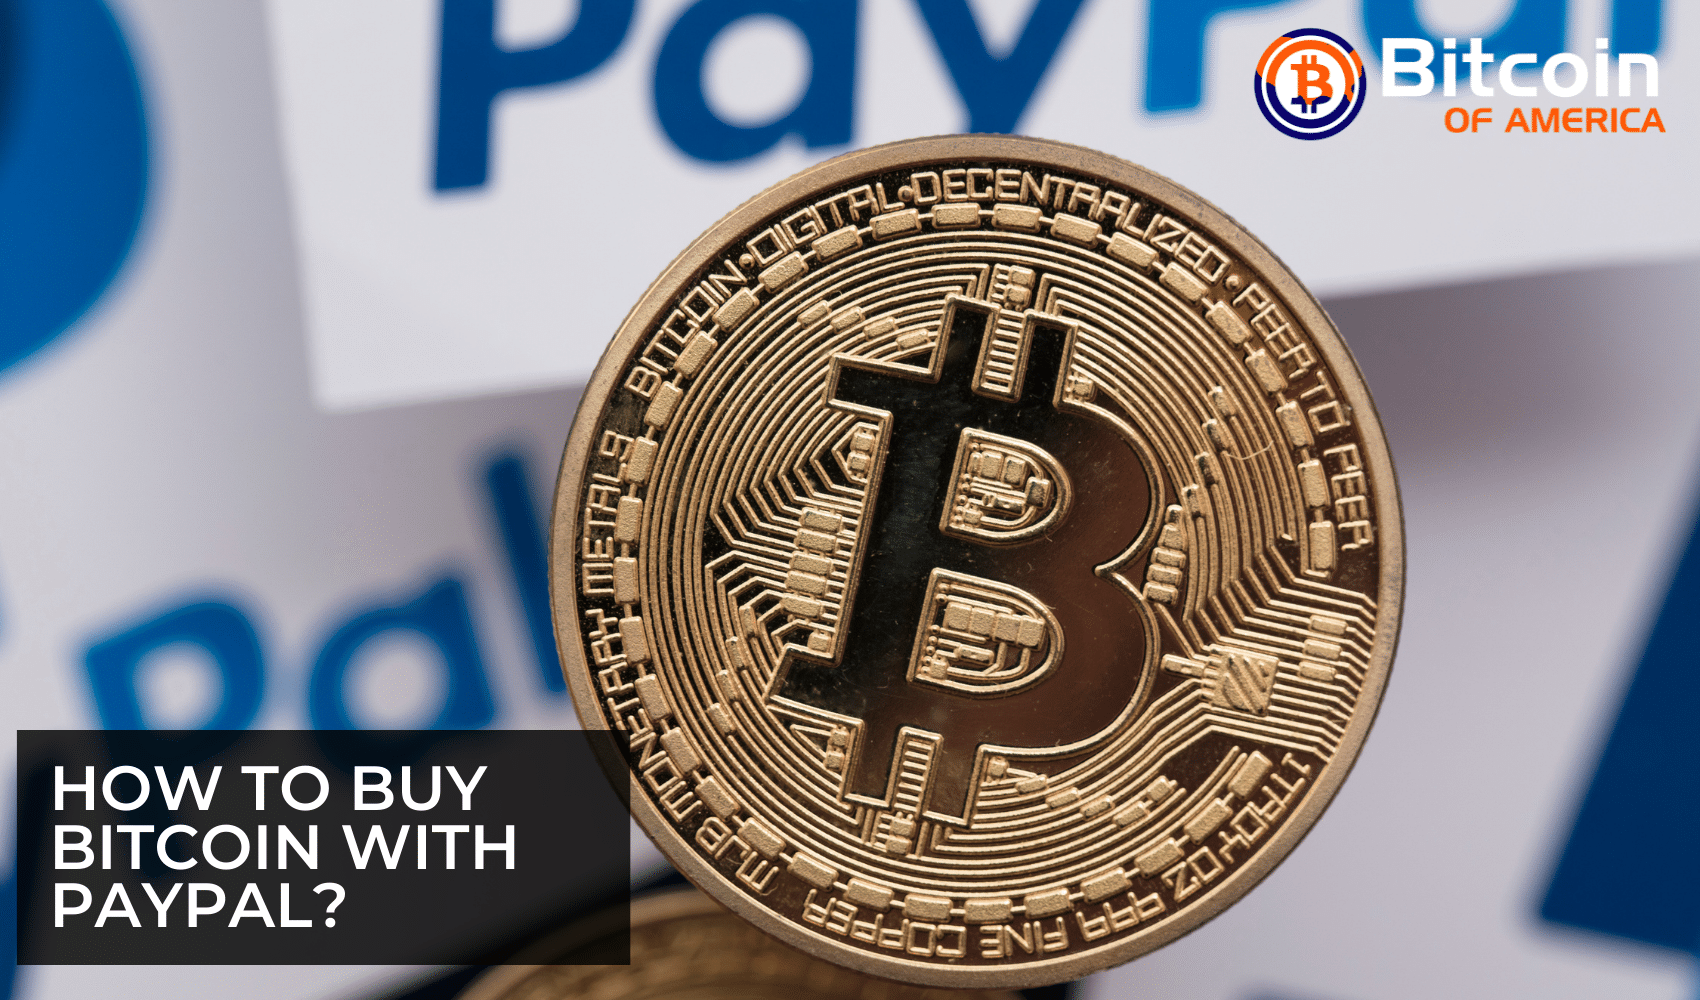 How to Buy Bitcoin with PayPal?